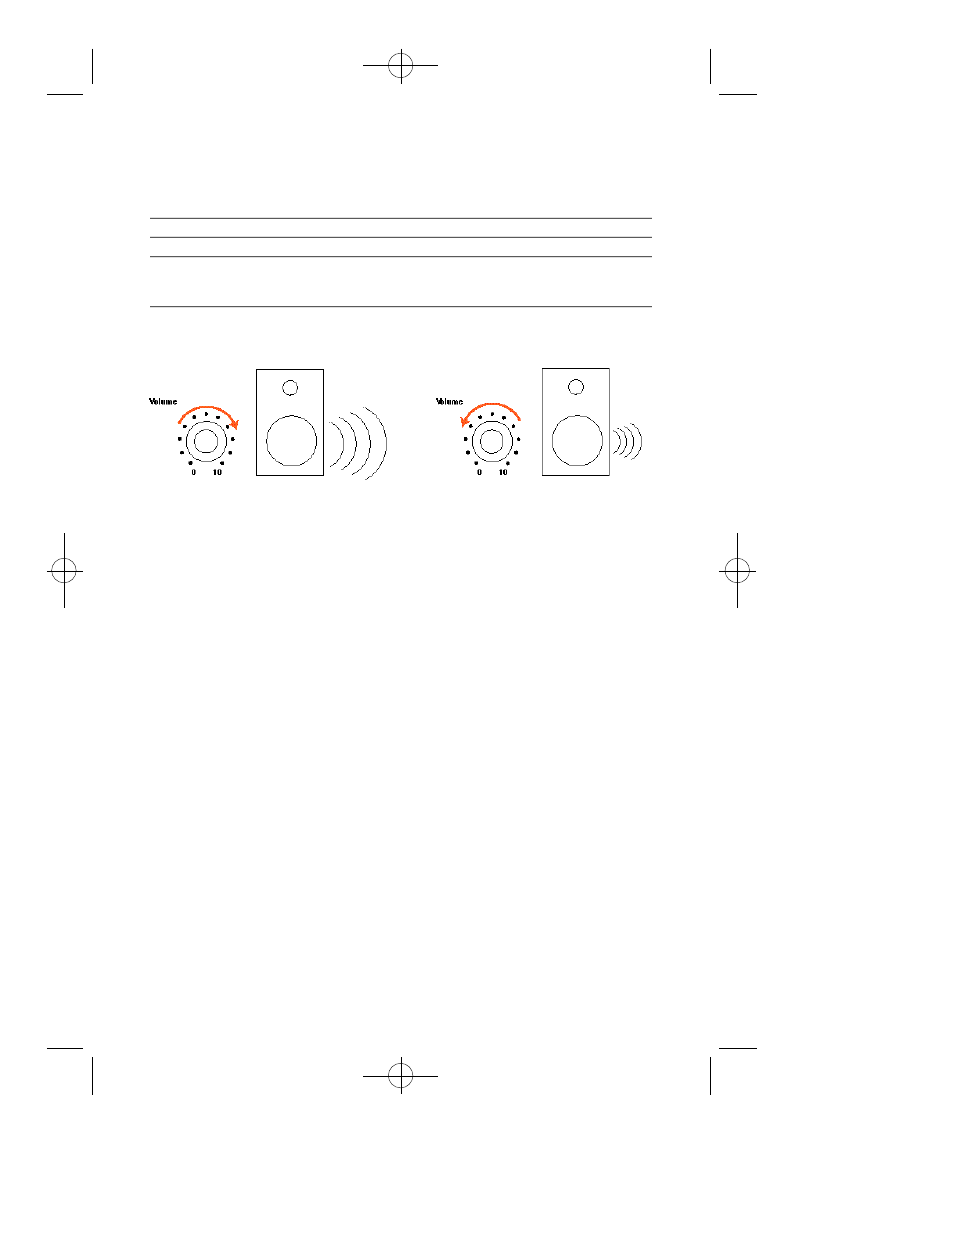 Three Troubleshooting Operation Jbl Tlx Ps10 User Manual Page Electrical Outlet Wiring Red Black And White 5 6